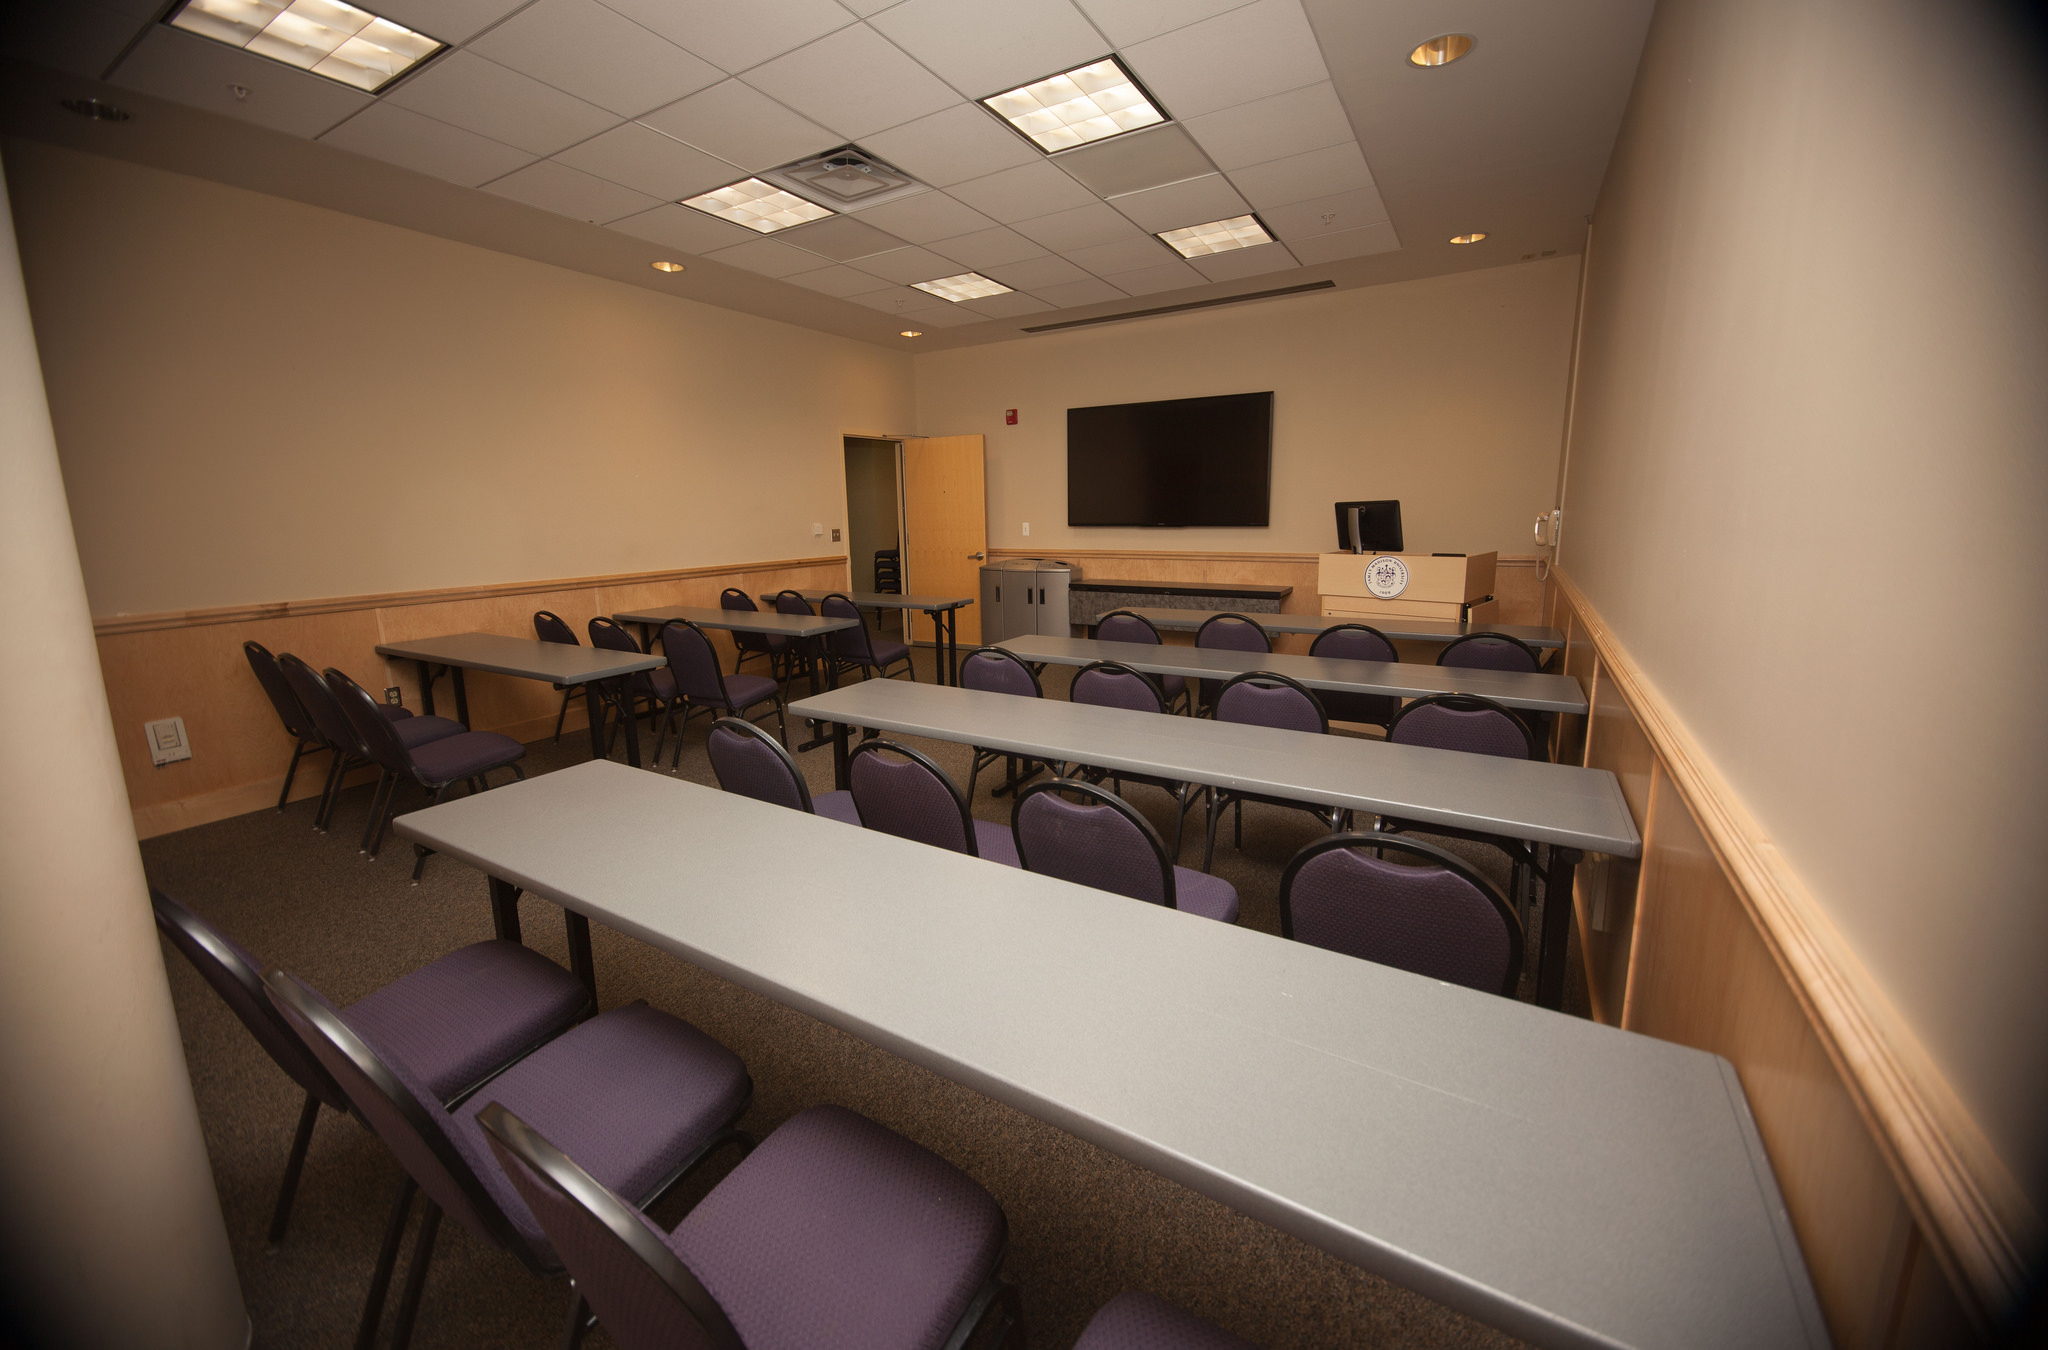 Photo of a small conference room with classroom setup.